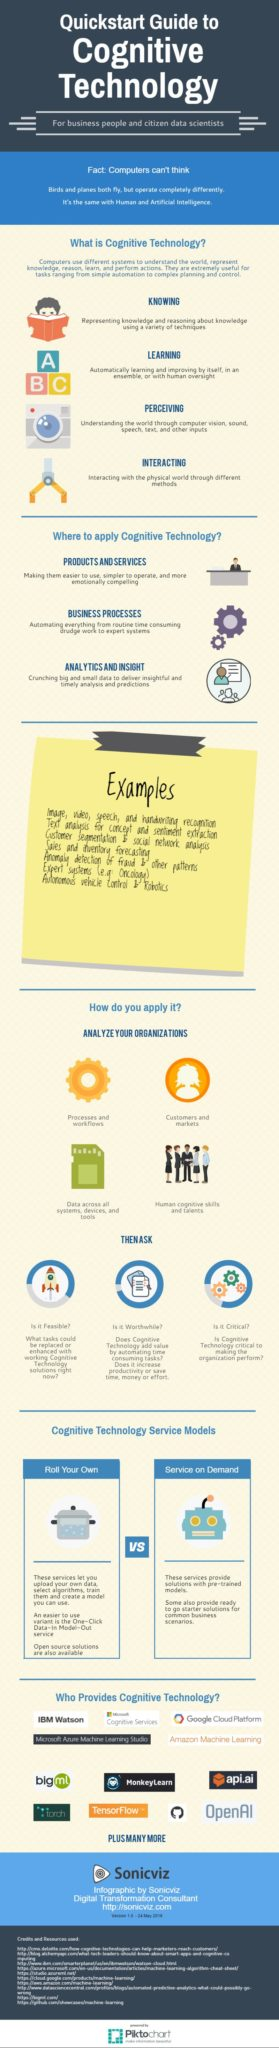 Cognitive Technology Quickstart Infographic